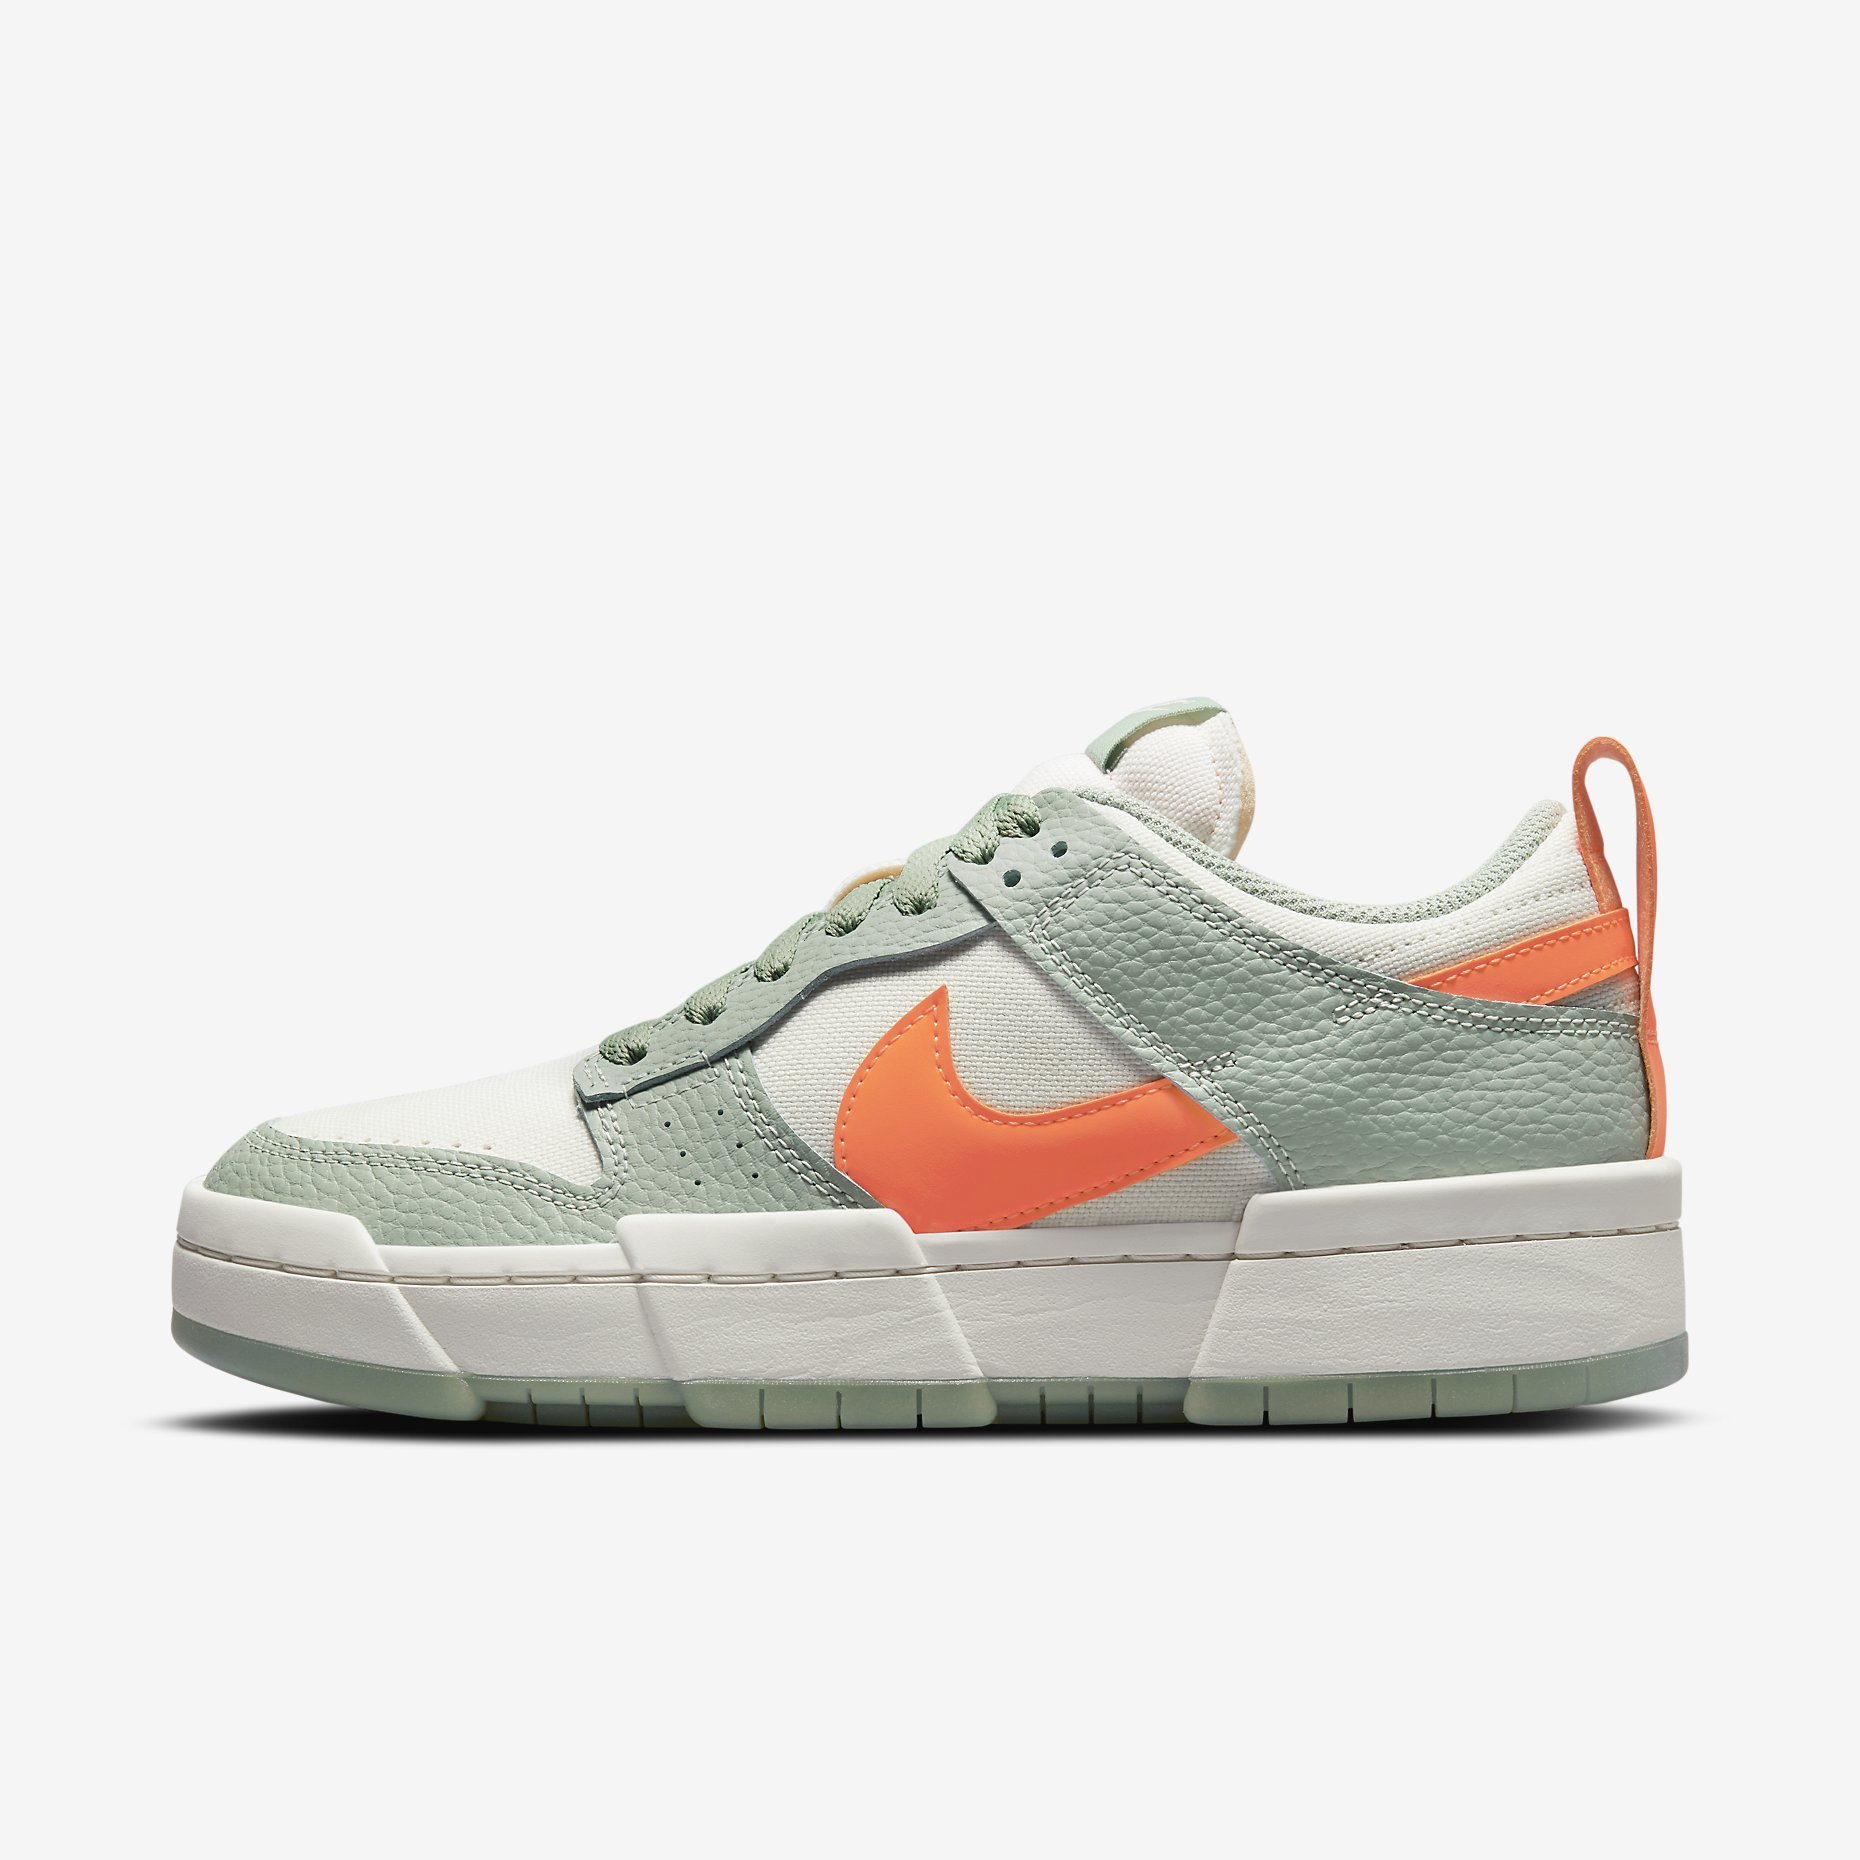 Women's Nike Dunk Low Disrupt 'Sea Glass/Hyper Crimson'}